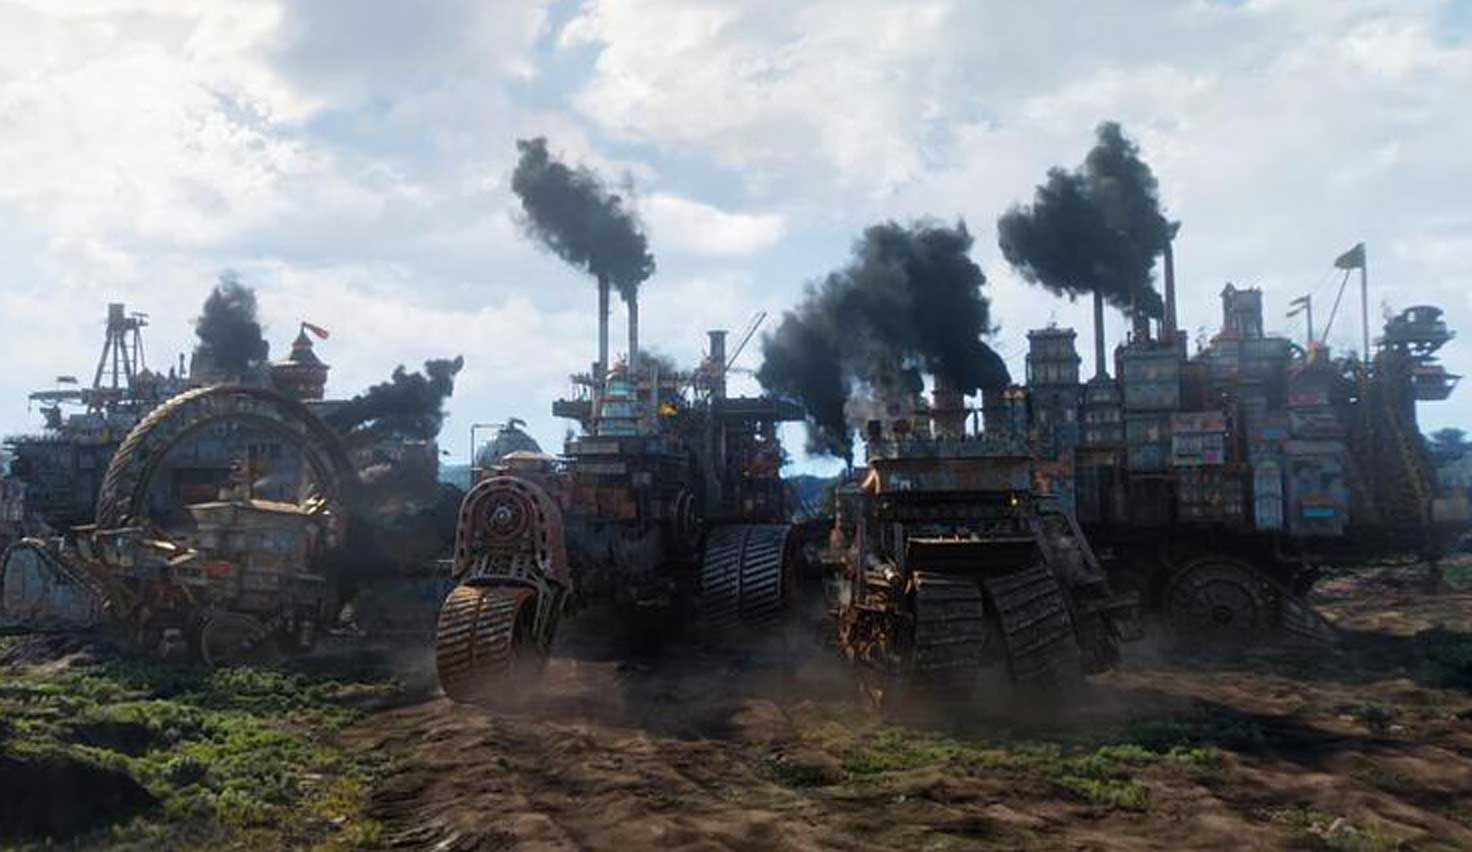 Would Singapore Survive As A Traction City In A 'Mortal Engines' Wasteland?